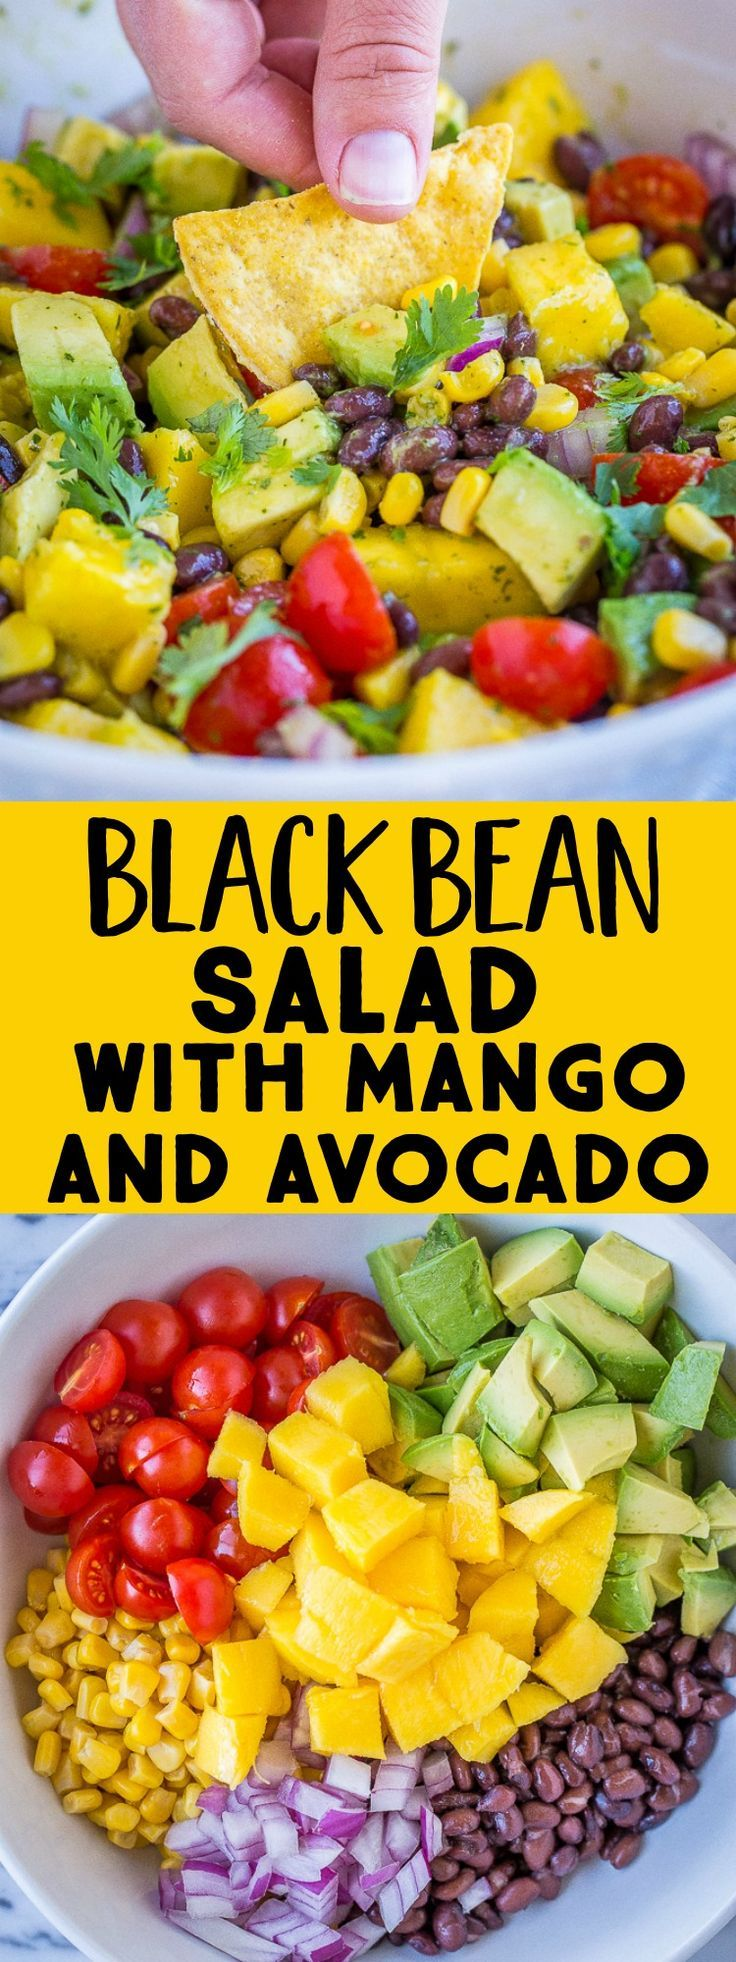 This Black Bean Salad with Mango and Avocado is sweet, savory and perfect for su…